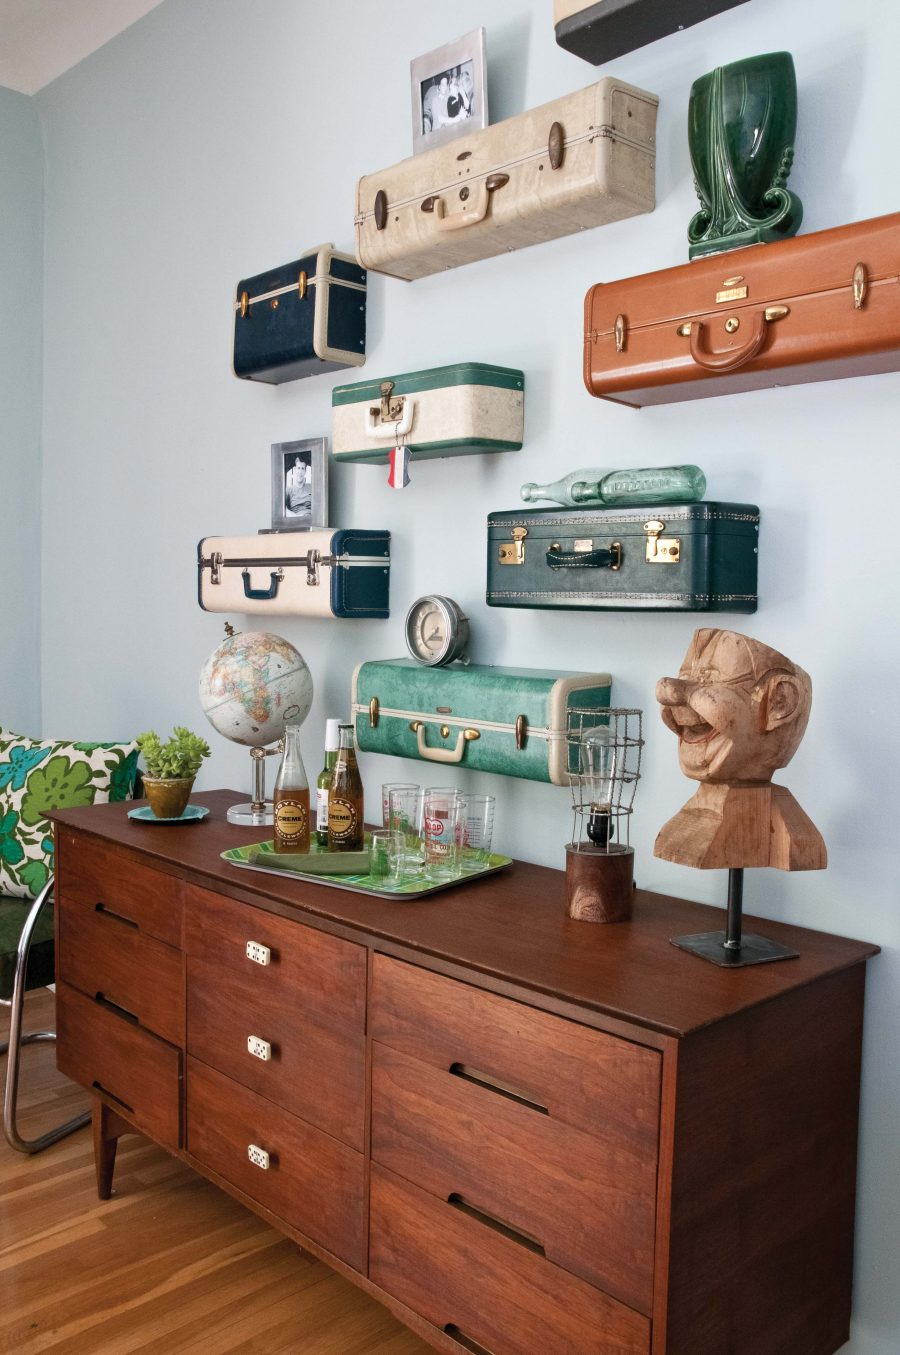 How To Keep Your Vintage Home Decor In Check 2 Vintage Home Decor How To Keep Your Vintage Home Decor In Check How To Keep Your Vintage Home Decor In Check 2